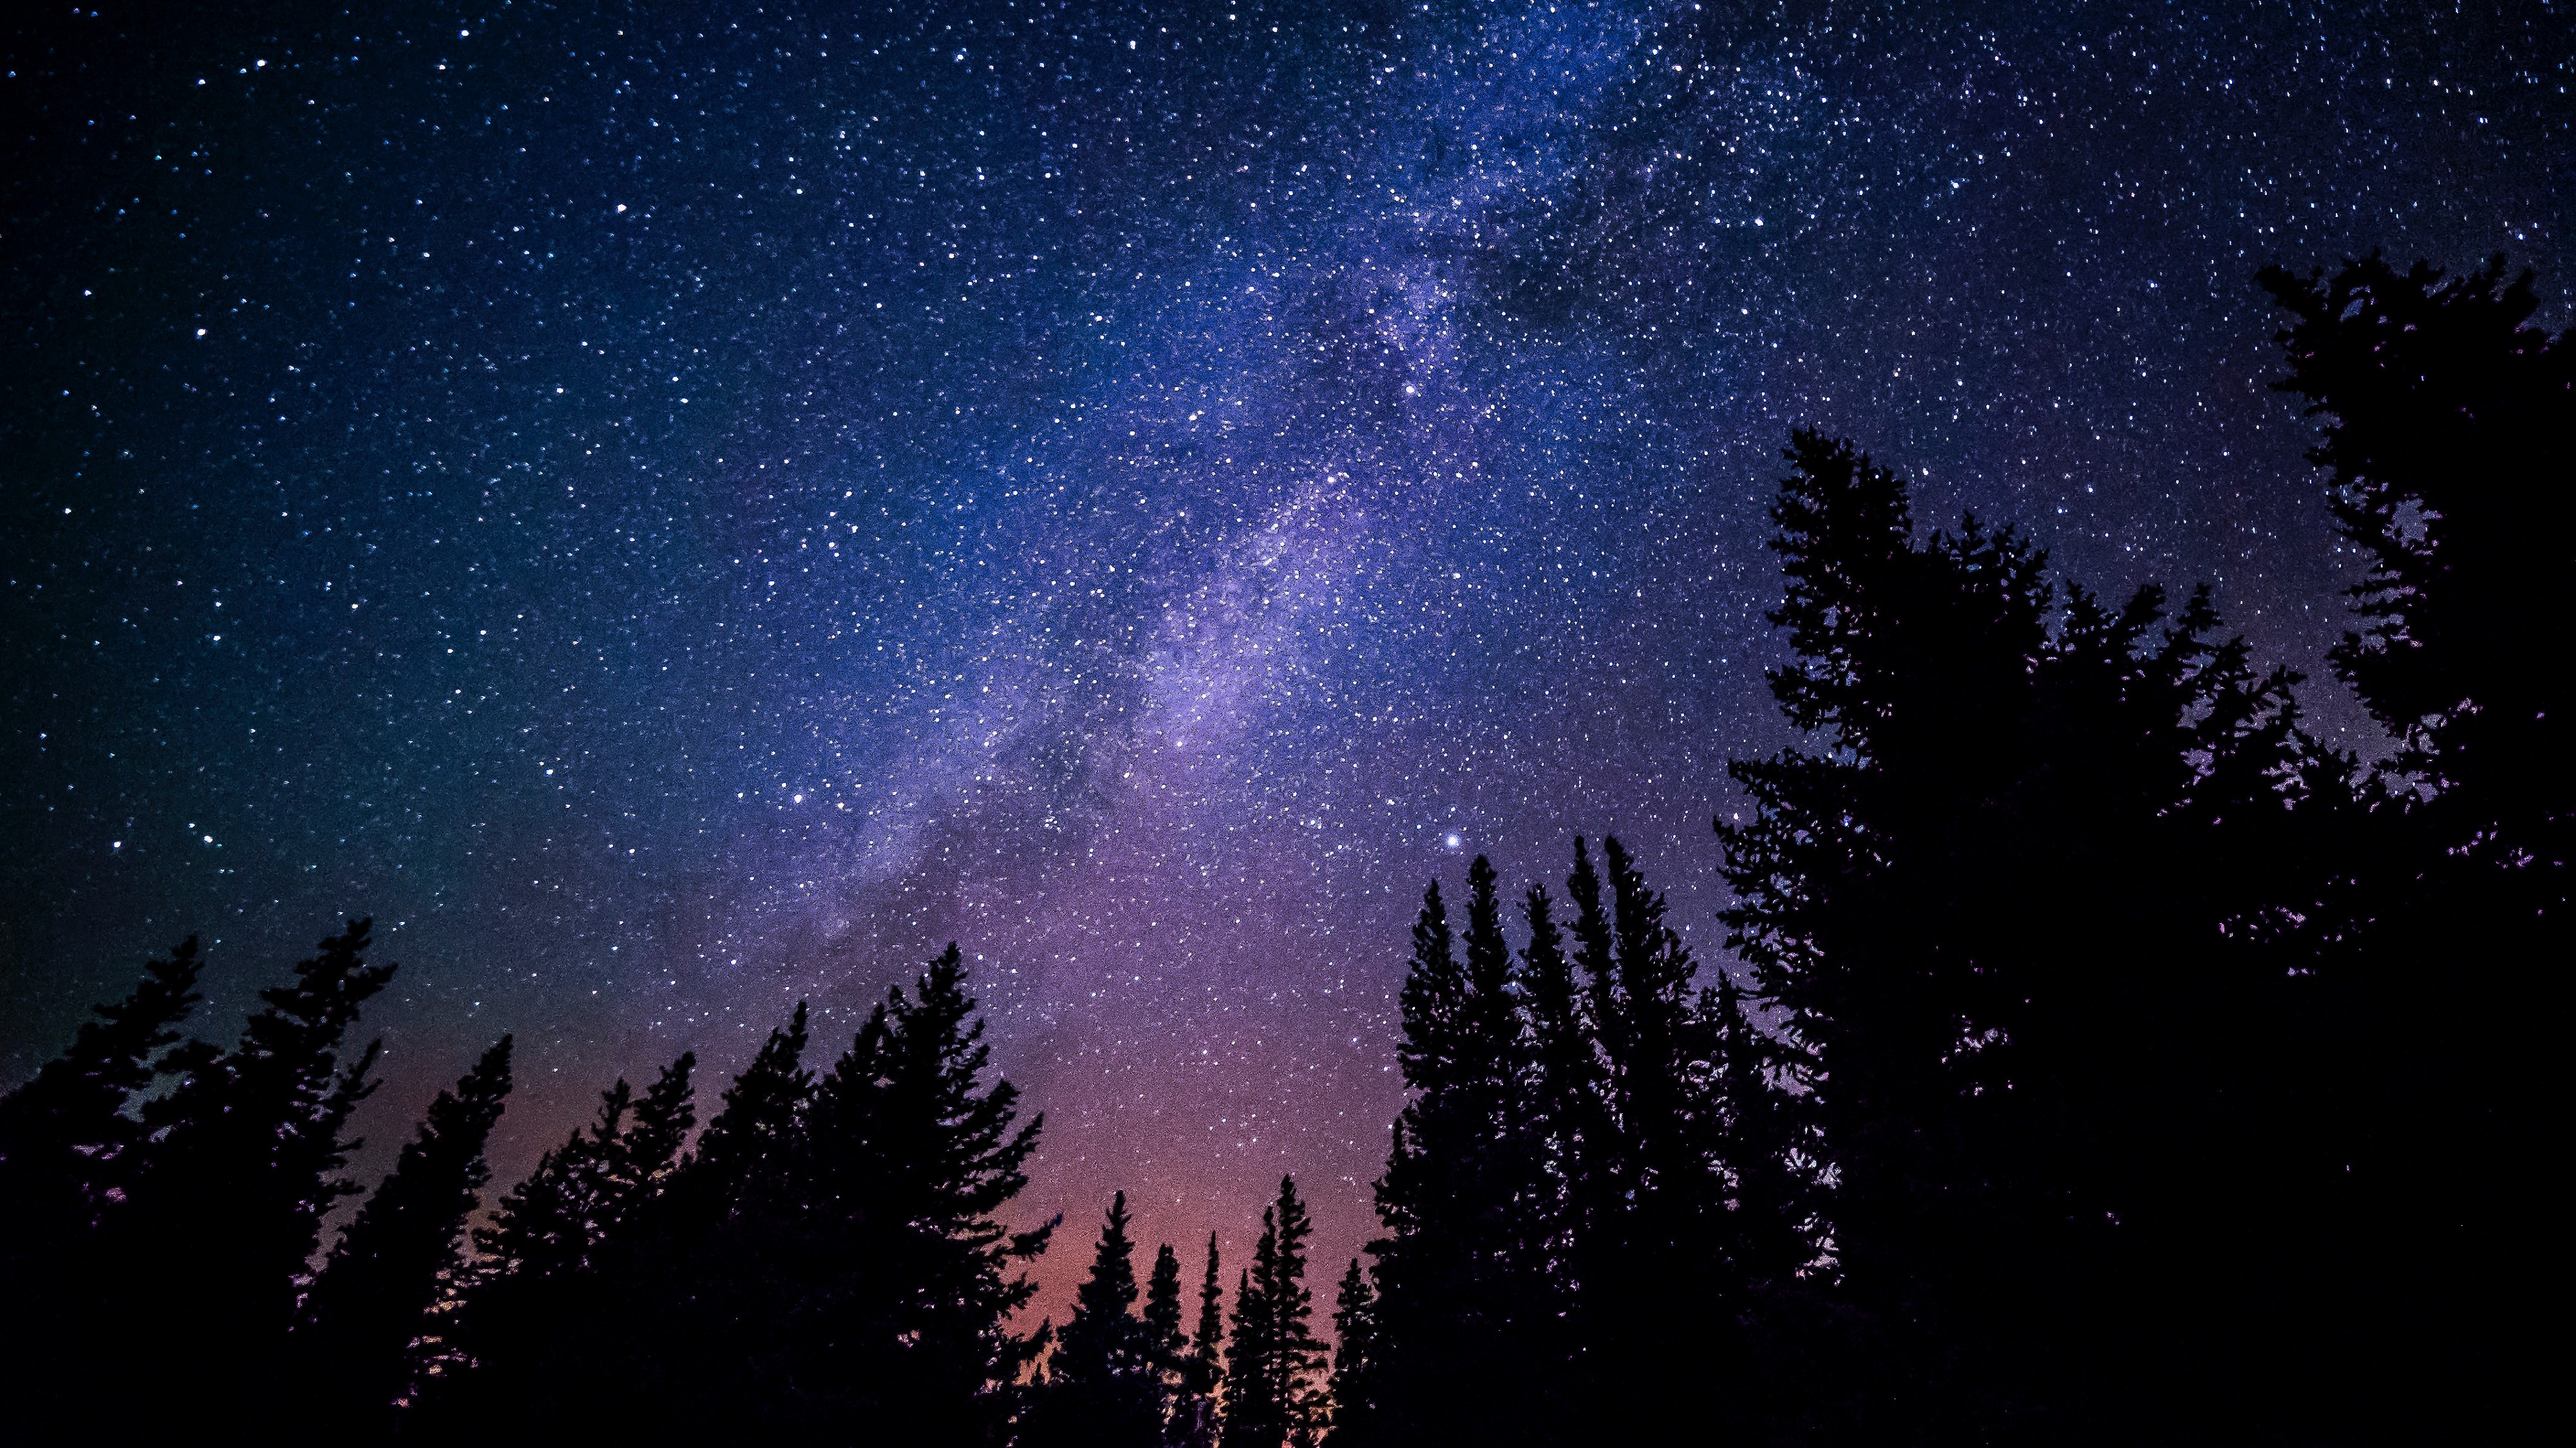 What On Earth Is Dark Matter The Night Sky Remains Full Of Mysteries By Rhea Moutafis Predict Medium